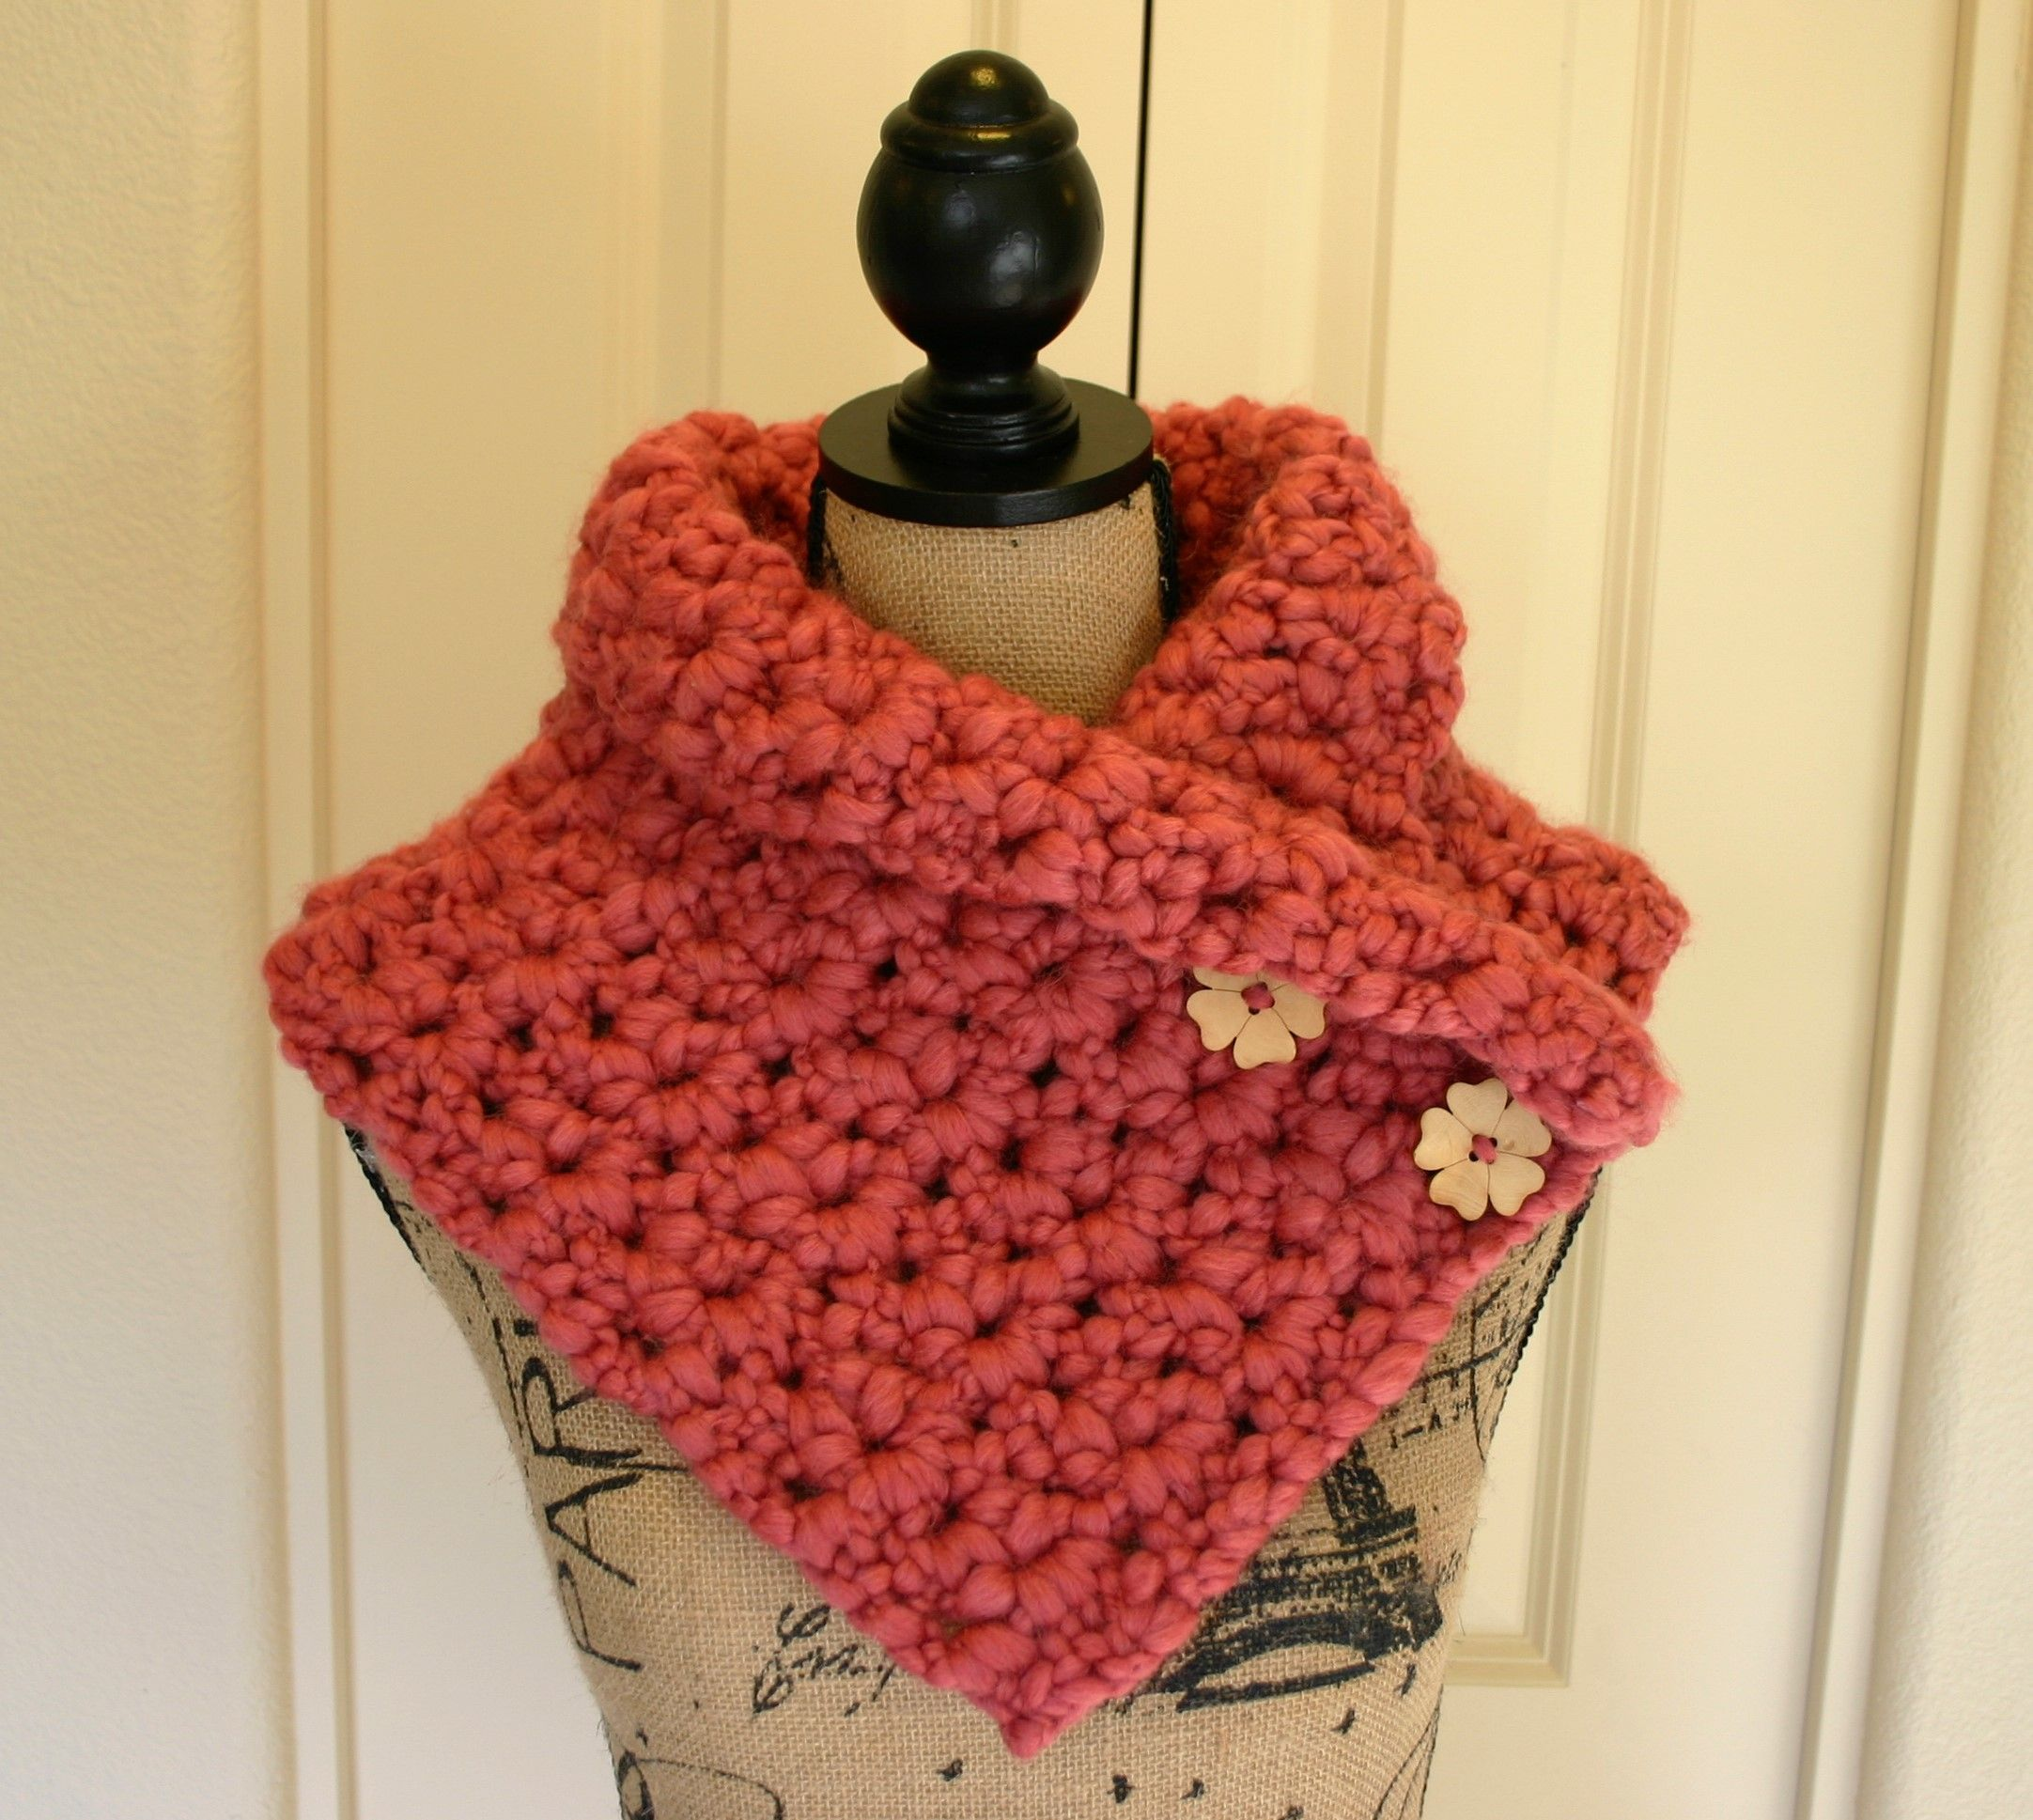 The La Vie En Rose Cowl is a soft, chic accessory conjuring up thoughts of springtime in Paris. Crocheted with lofty cobbled yarn, this dreamy pink-colored cowl is warm and stylish. The cowl is accented with two wooden flower buttons.